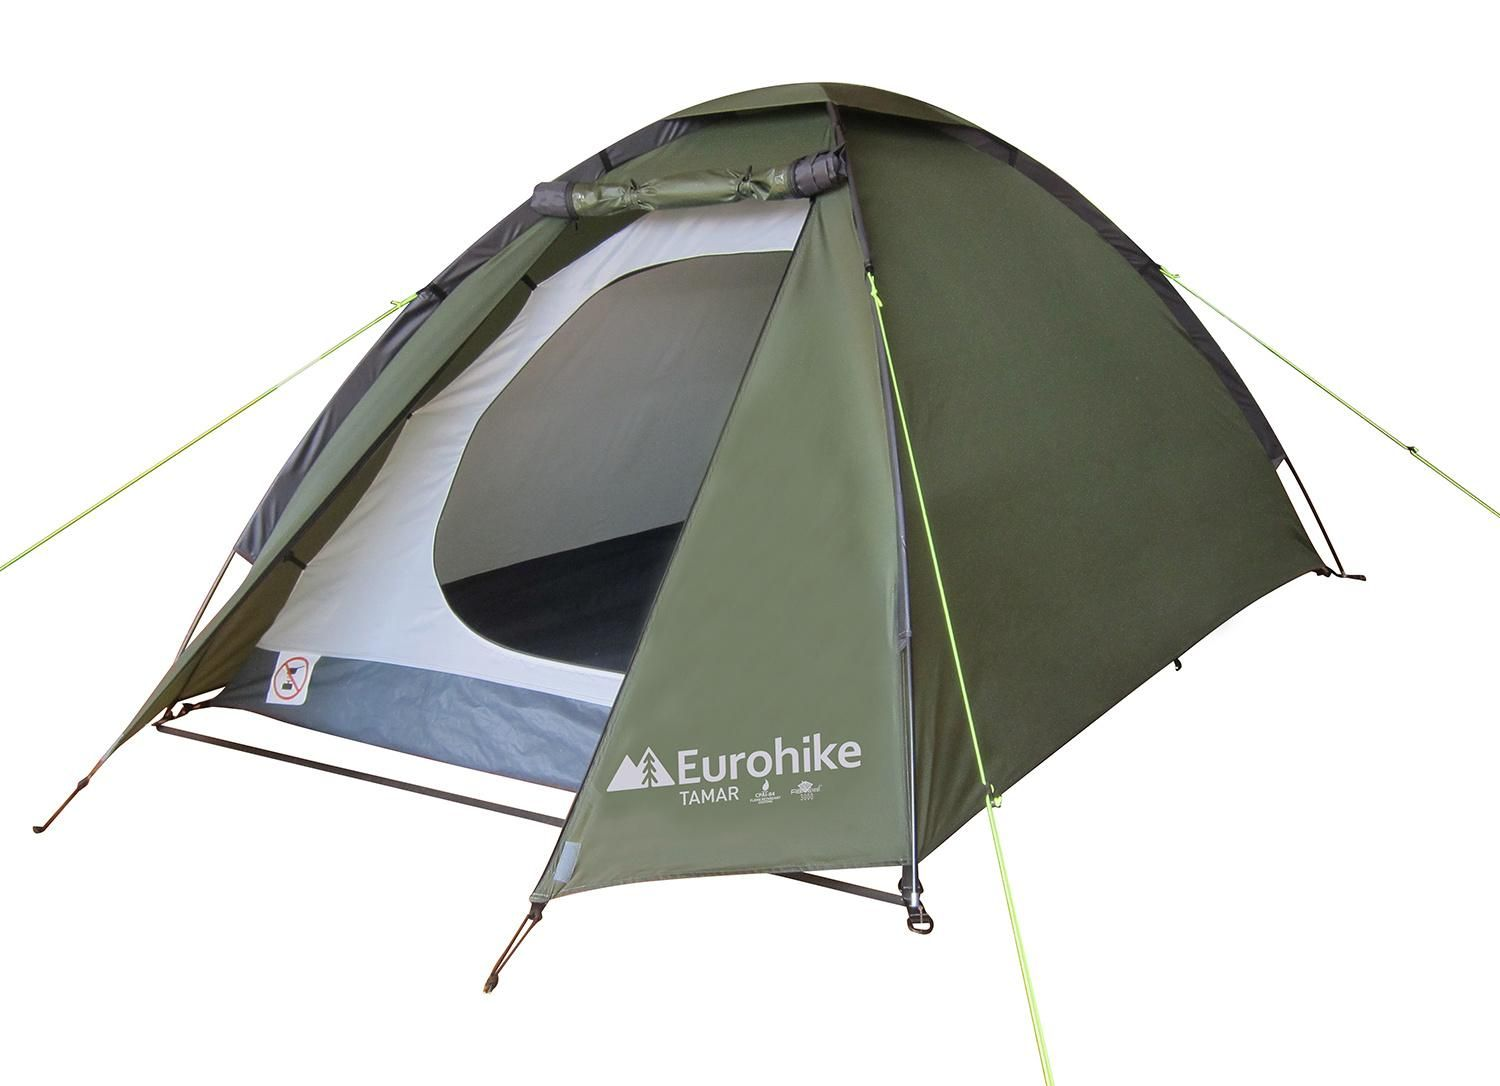 We borrowed this tent from a friend ** Eurohike Tamar 2 man tent **  sc 1 st  Pinterest & We borrowed this tent from a friend ** Eurohike Tamar 2 man tent ...